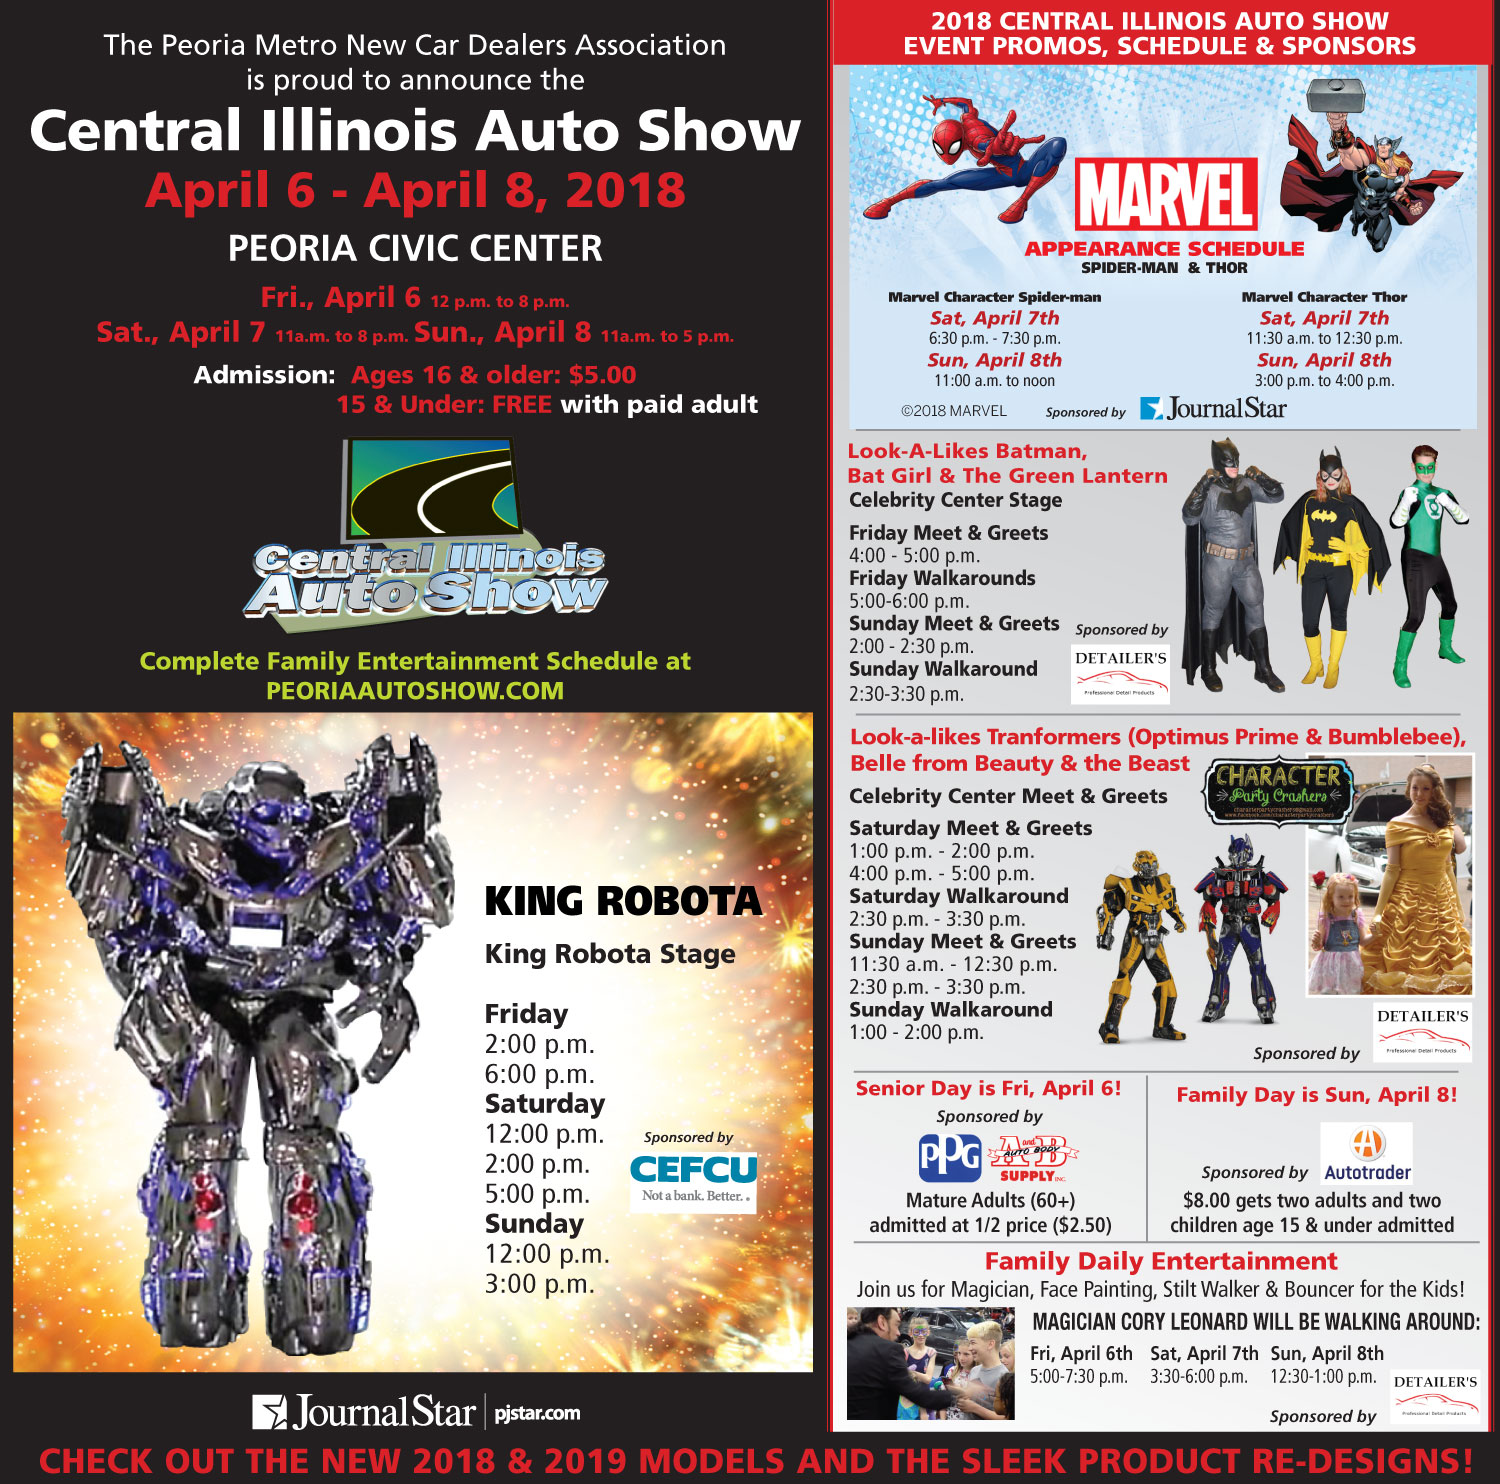 2018 Central Illinois Auto Show Event Promos, Schedule and Sponsors